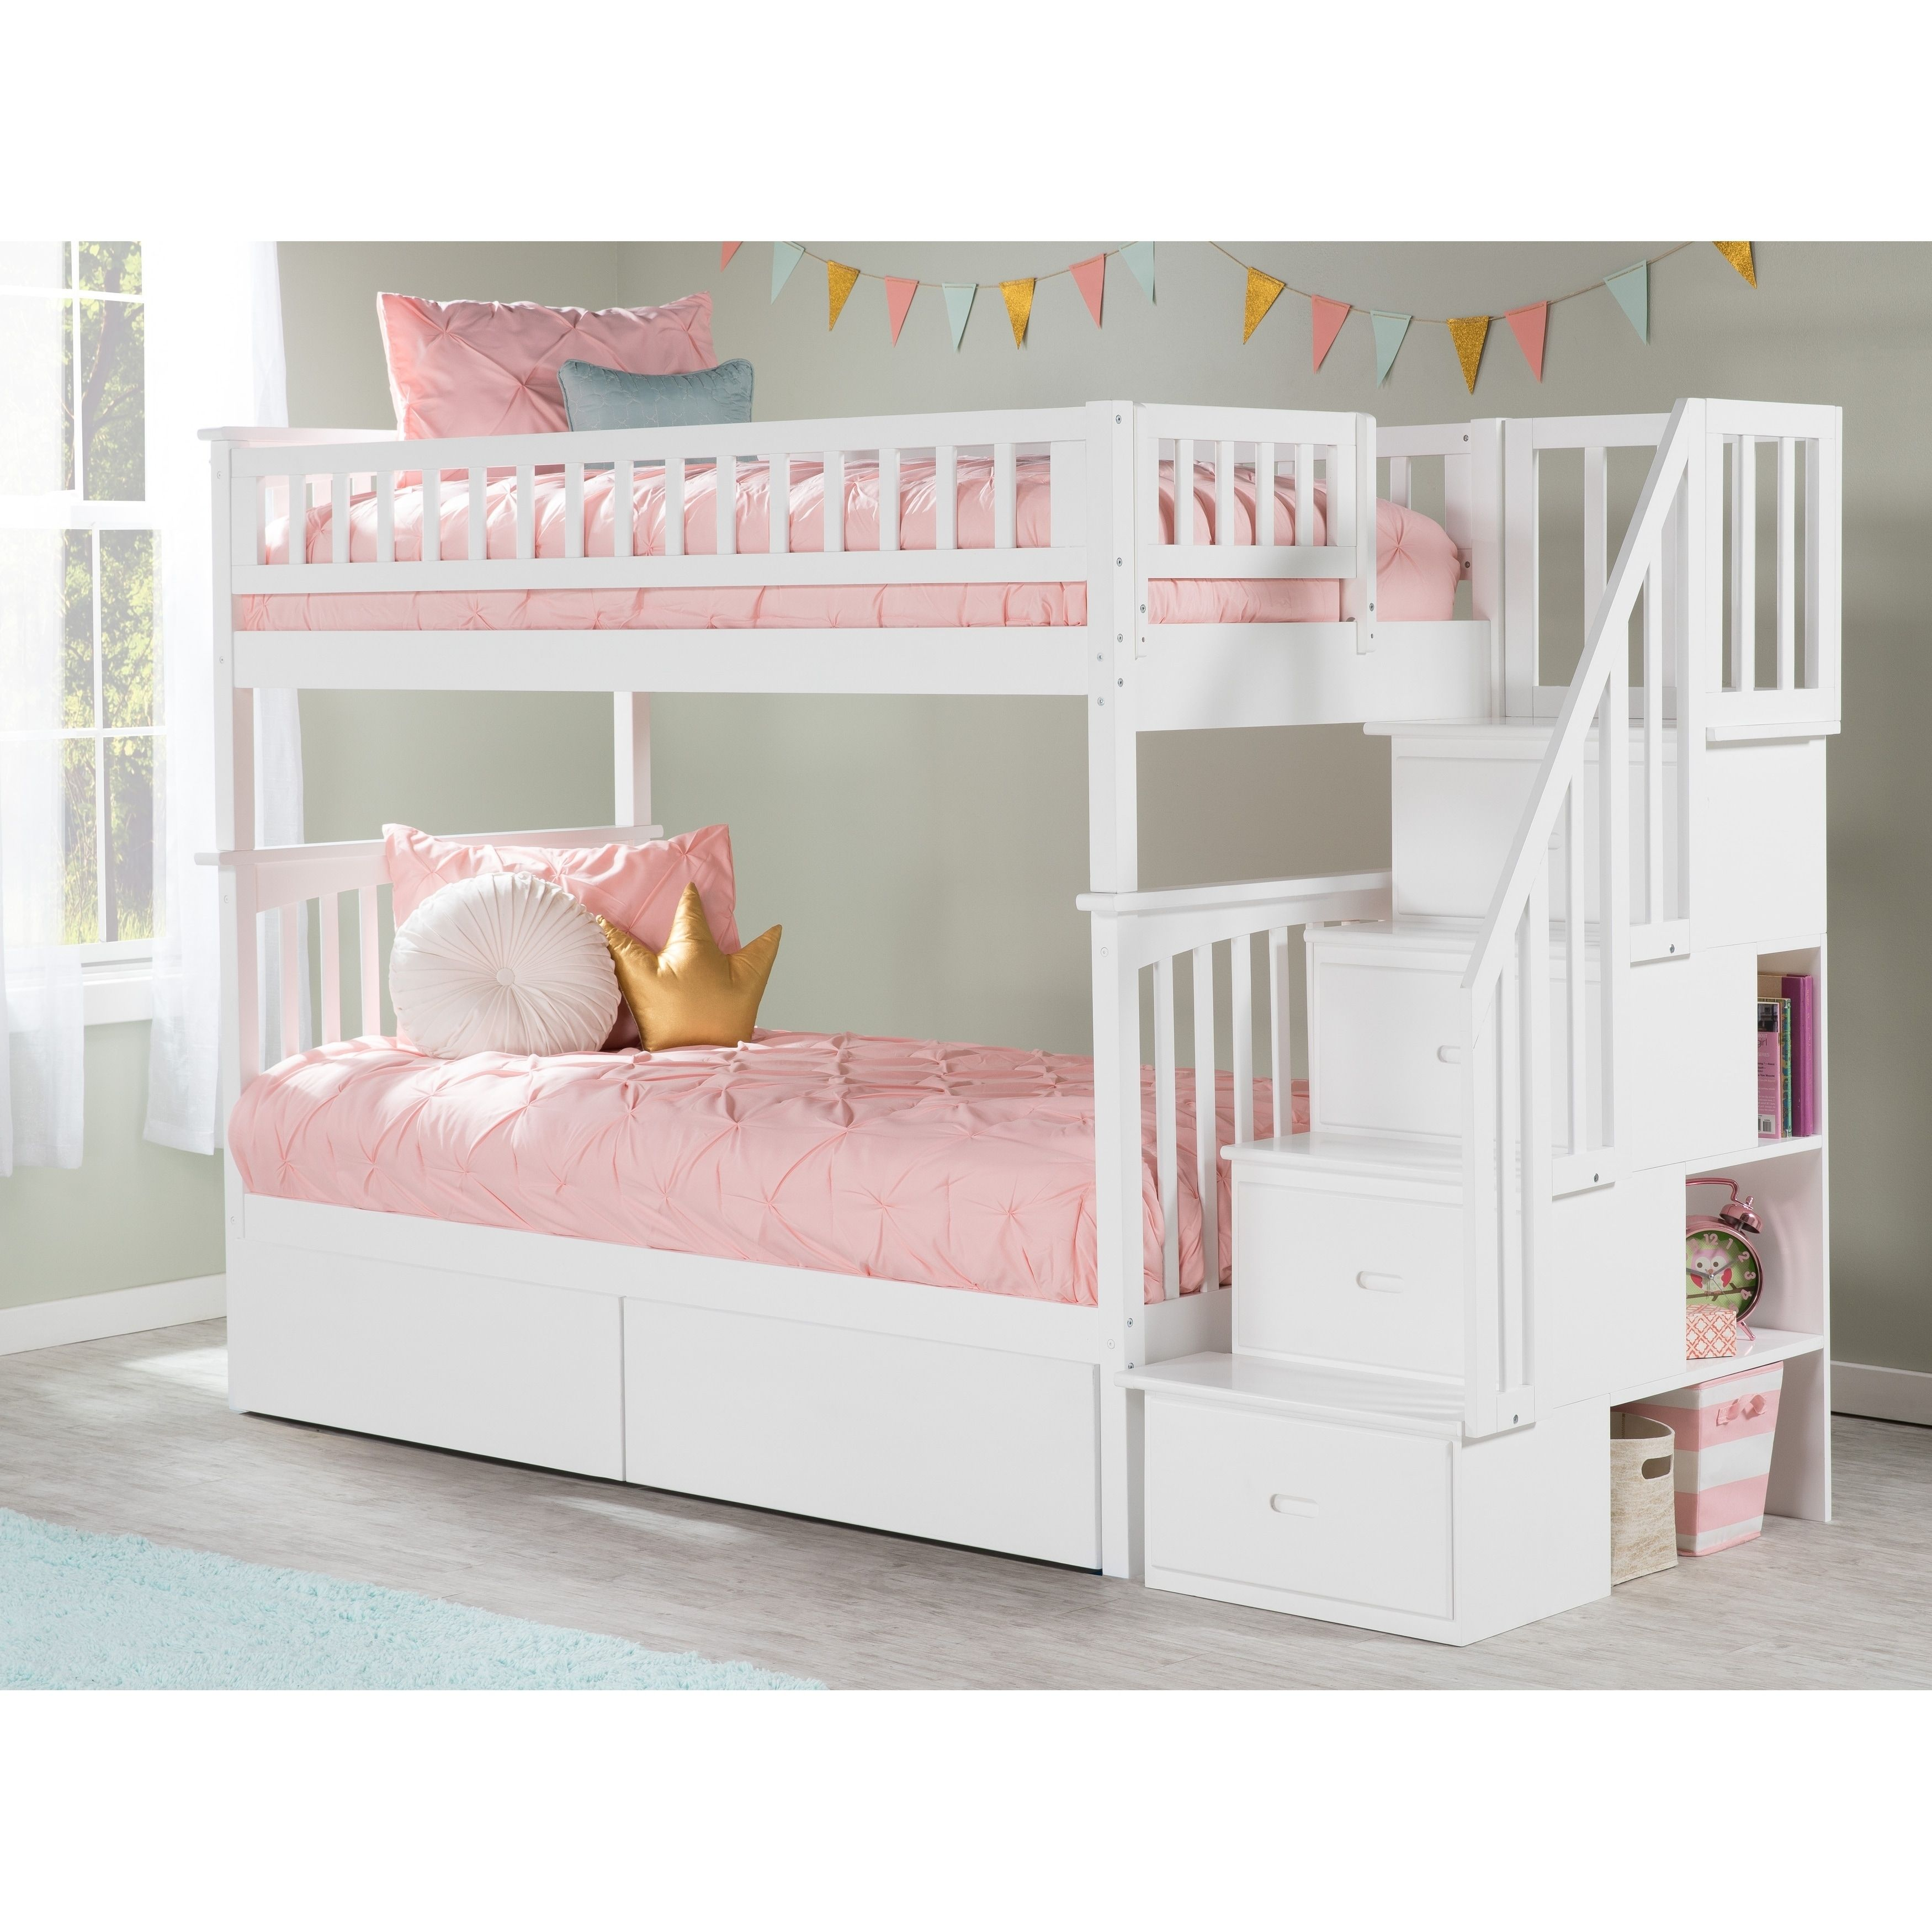 Columbia Staircase Bunk Bed Twin Over Twin With 2 Urban Bed Drawers In White Atlantic Furnitur Bunk Beds With Drawers Staircase Bunk Bed Bunk Bed With Trundle Twin bunk beds with drawers